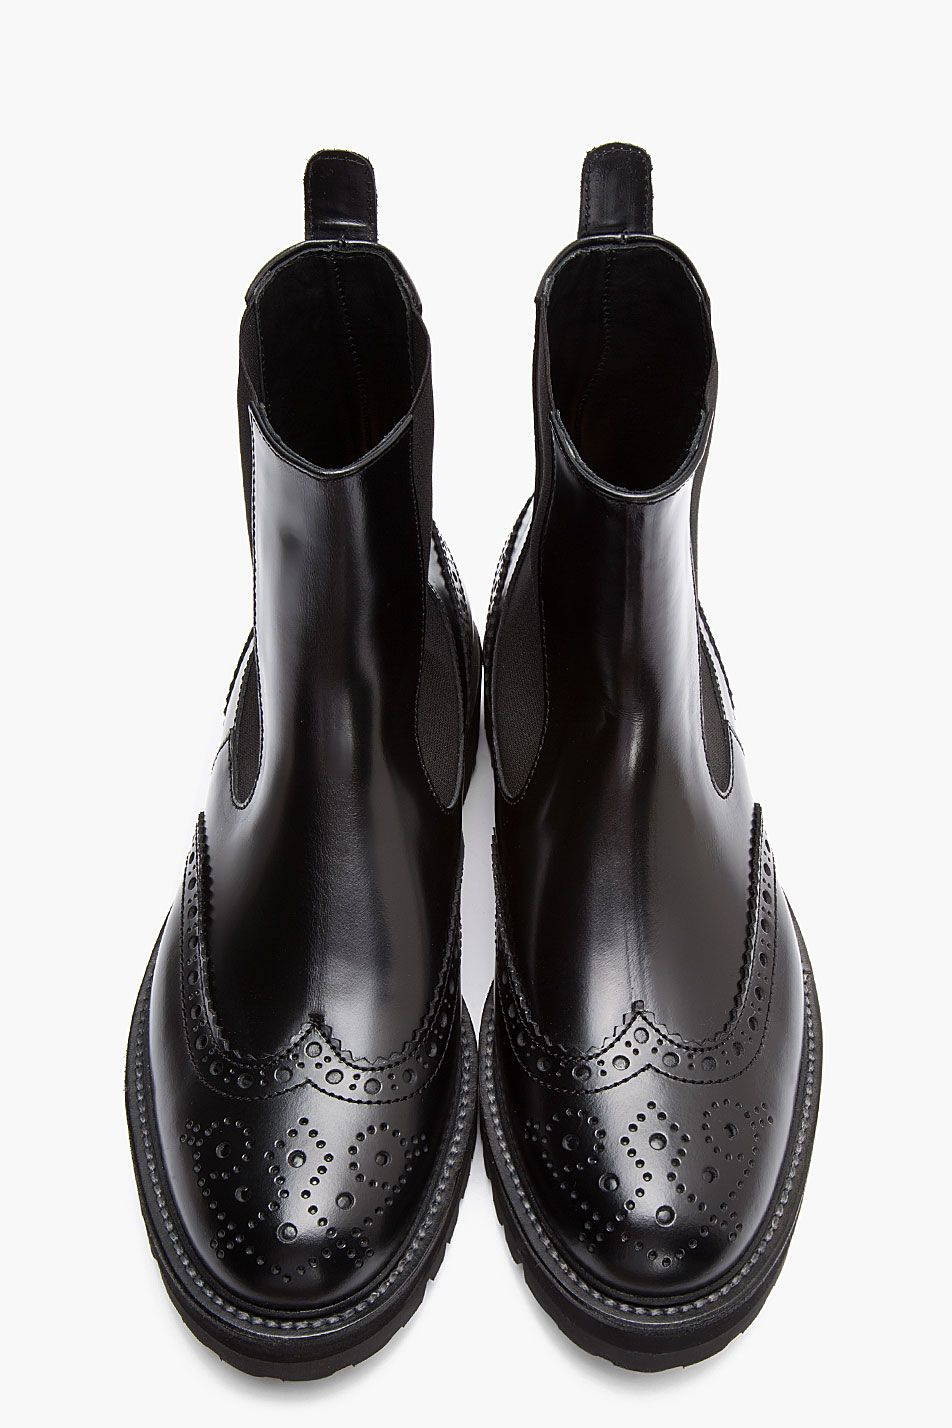 Black Leather Chelsea Wingtip Brogue Boots